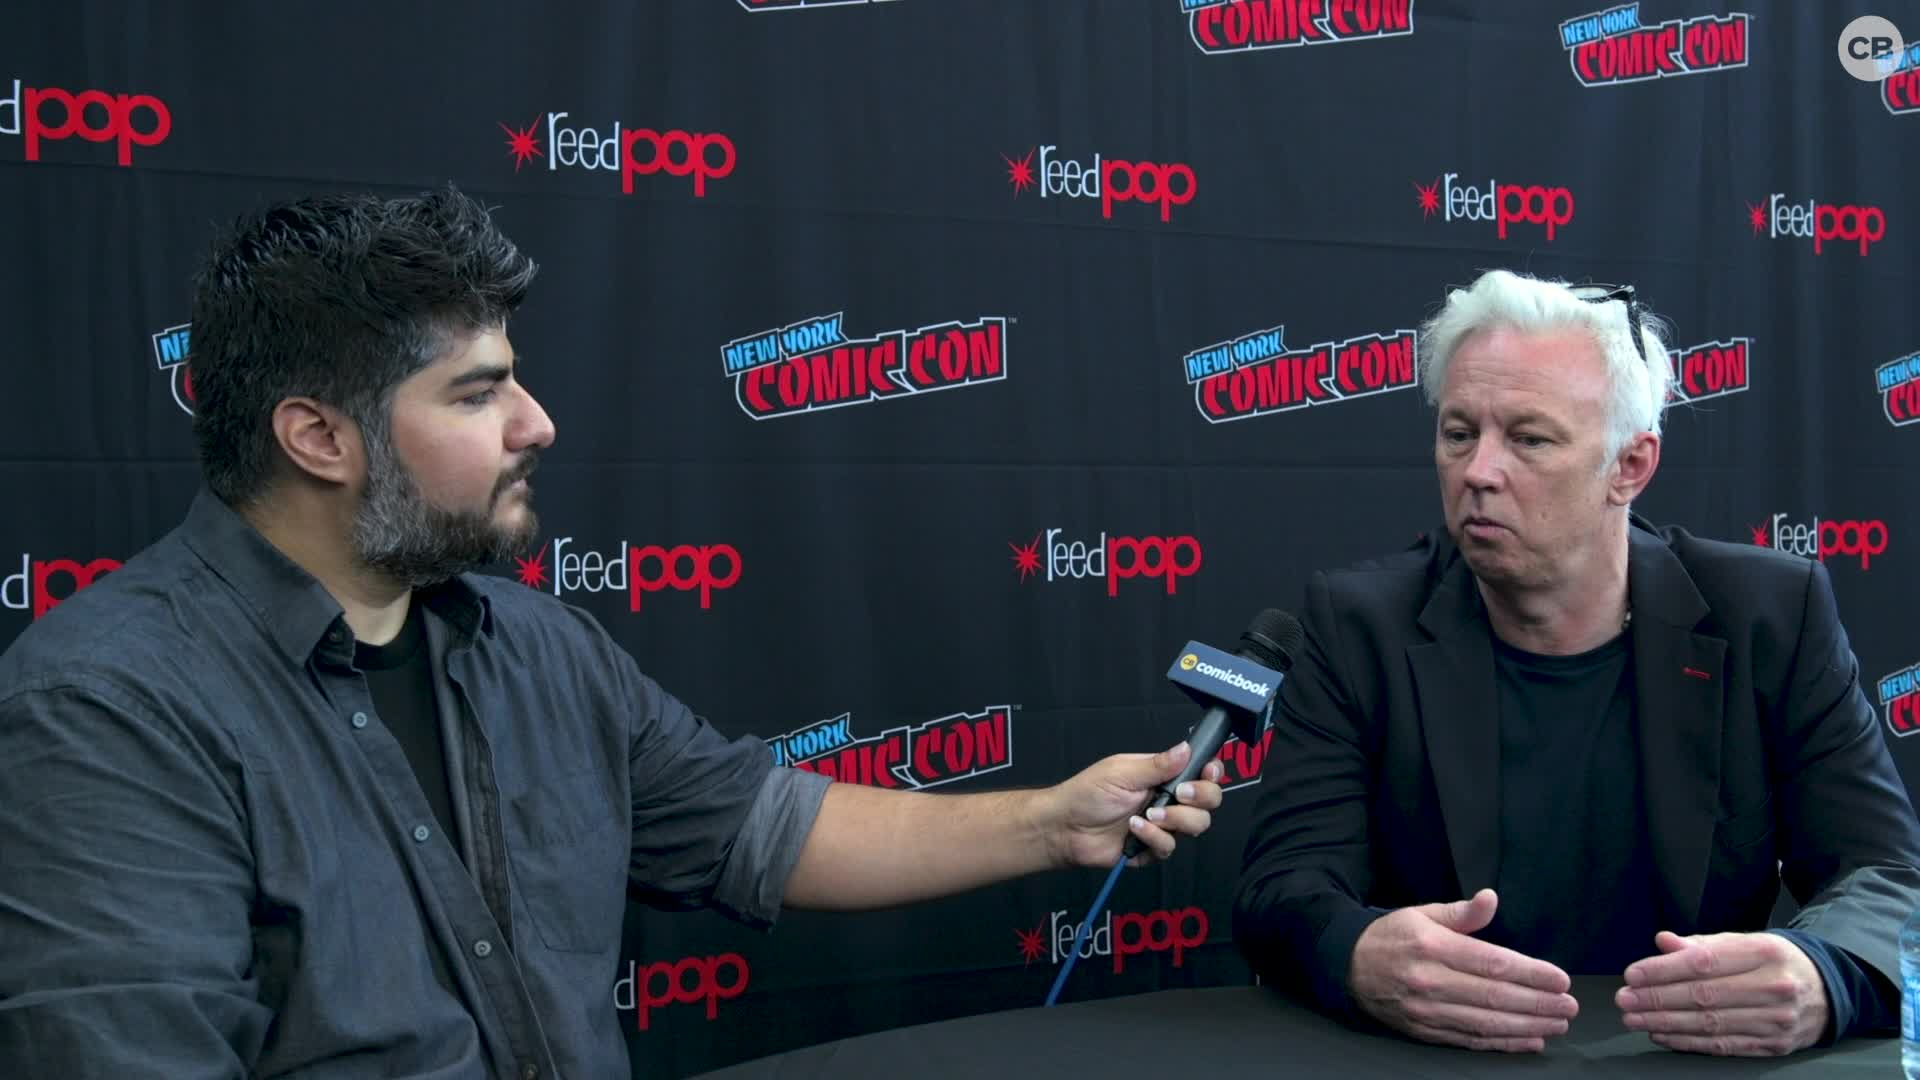 Tony Basgallop - NYCC 2019 Exclusive Interview screen capture